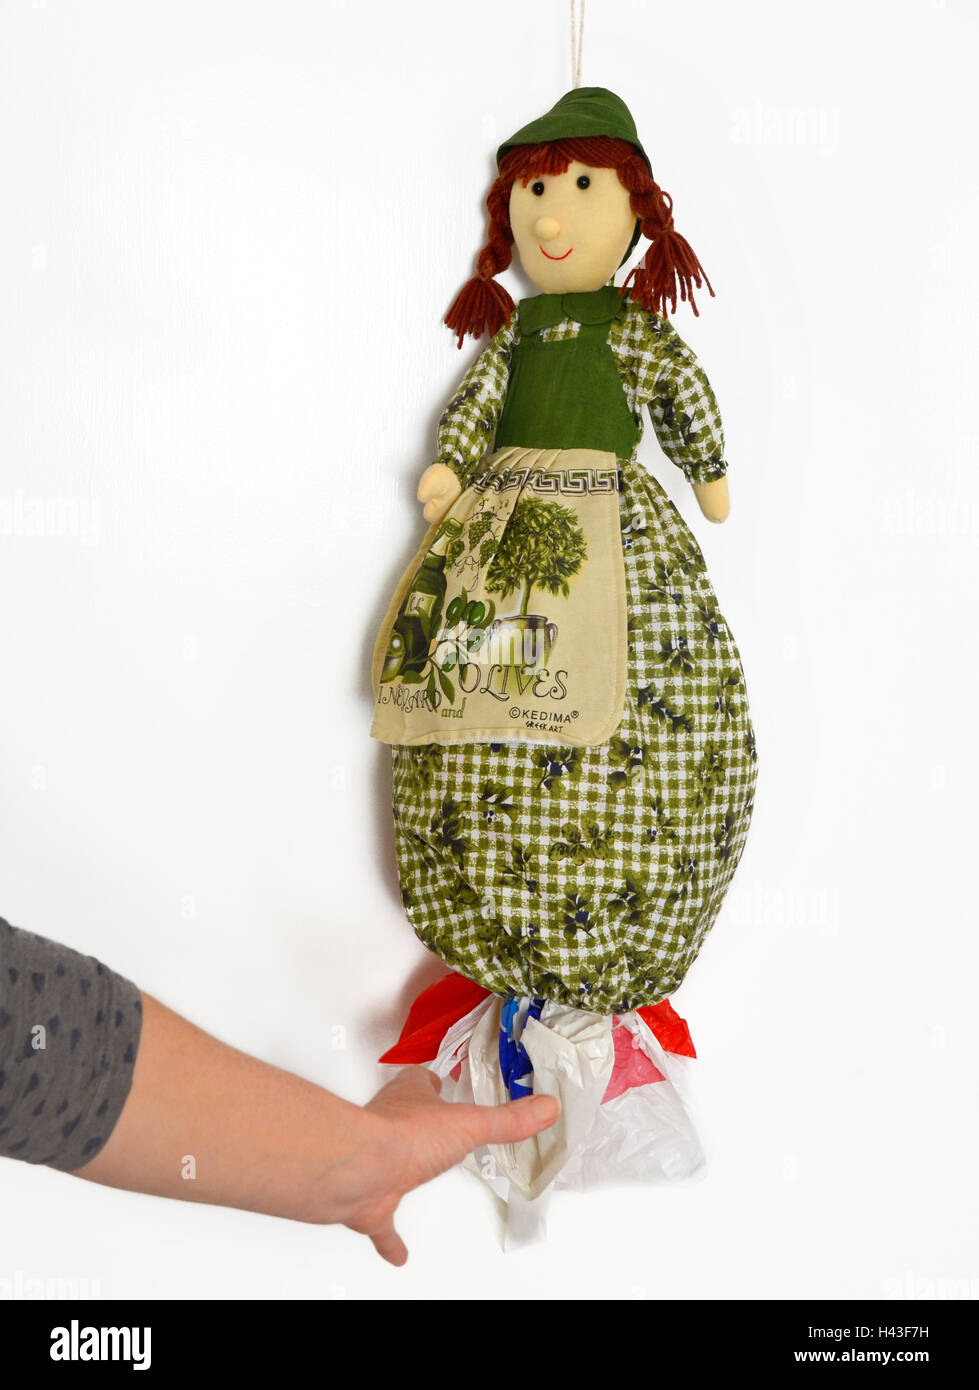 A dollie bag holder/ dispenser of plastic bags. A person reaches out to take one out. - Stock Image